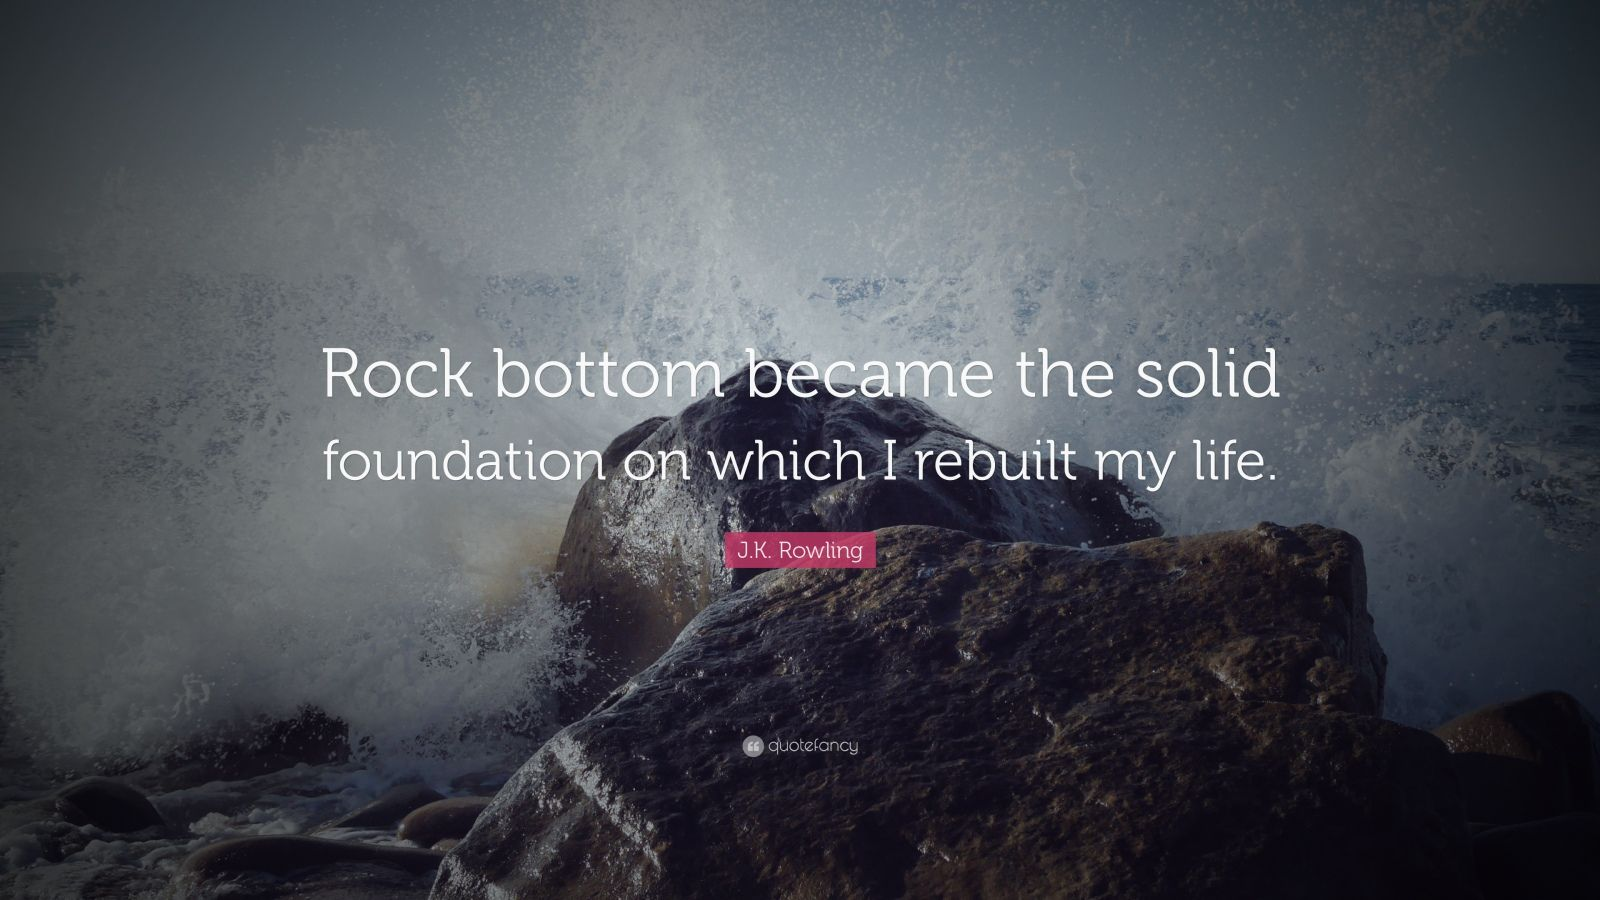 j k  rowling quote   u201crock bottom became the solid